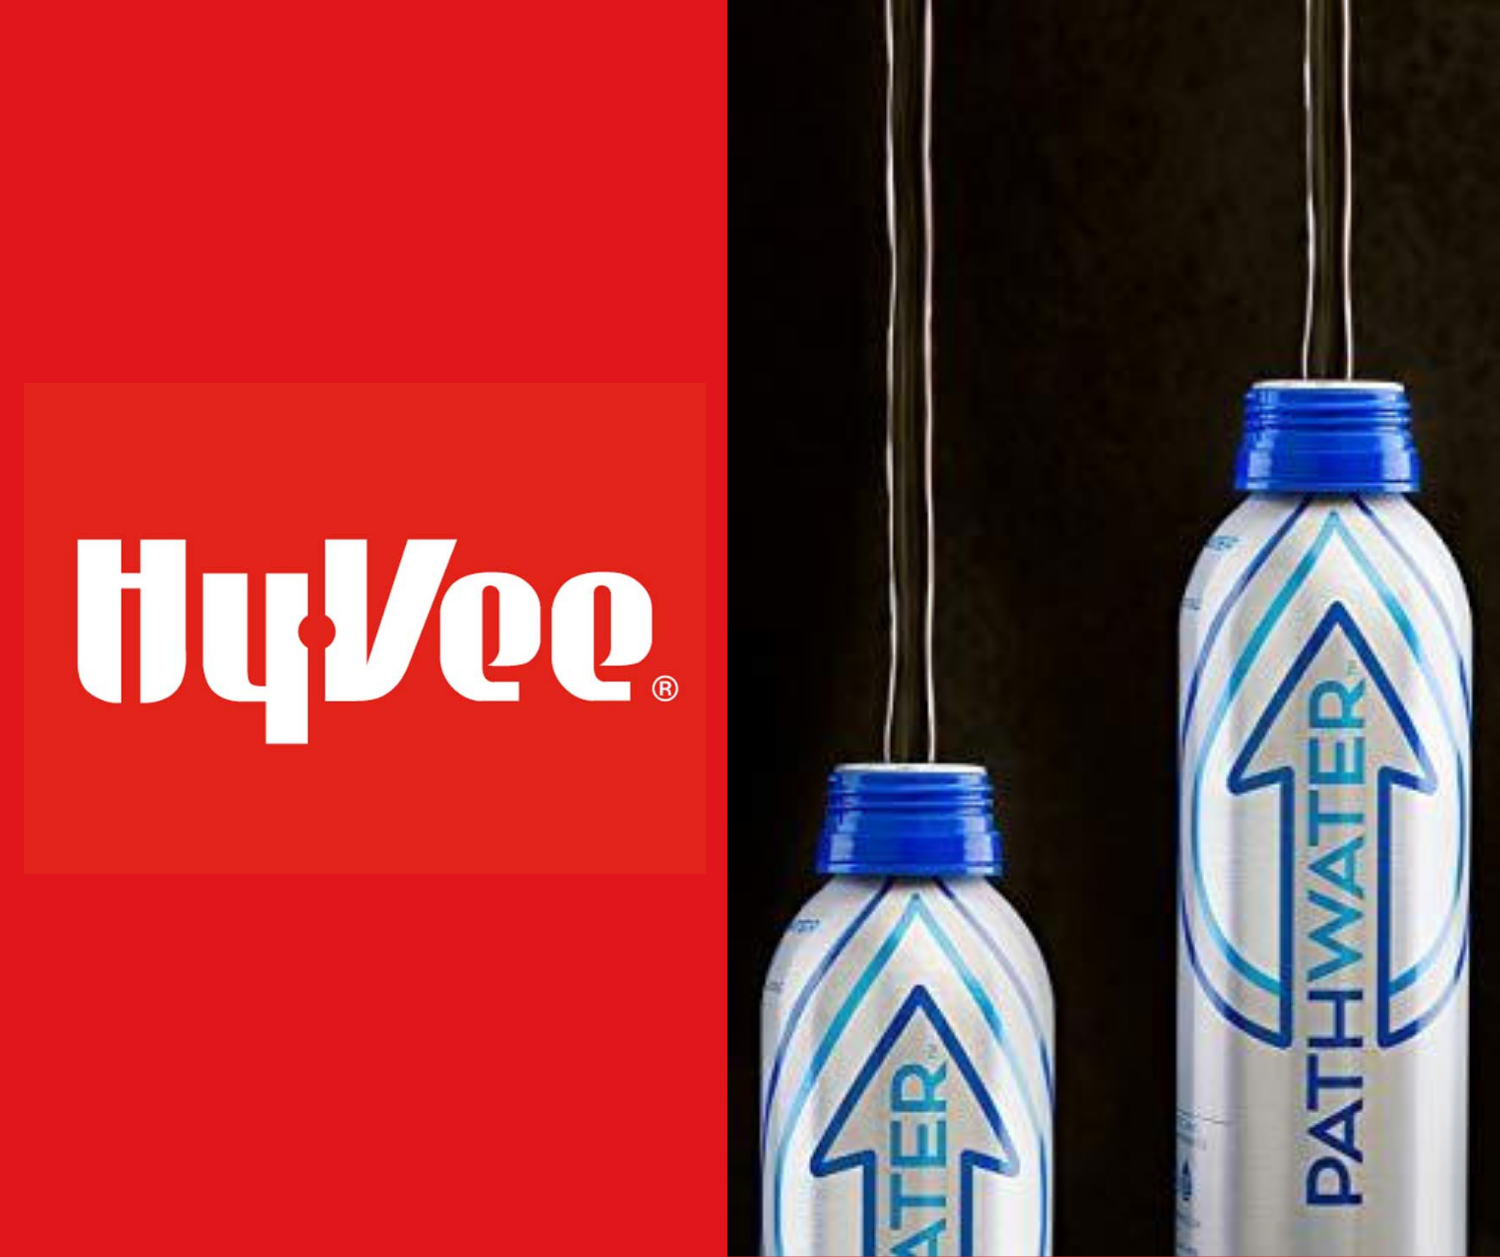 Hy-Vee is Selling PATHWATER's Reusable Bottled Water in an Effort to Help Consumers Reduce Plastic Bottled Water Waste